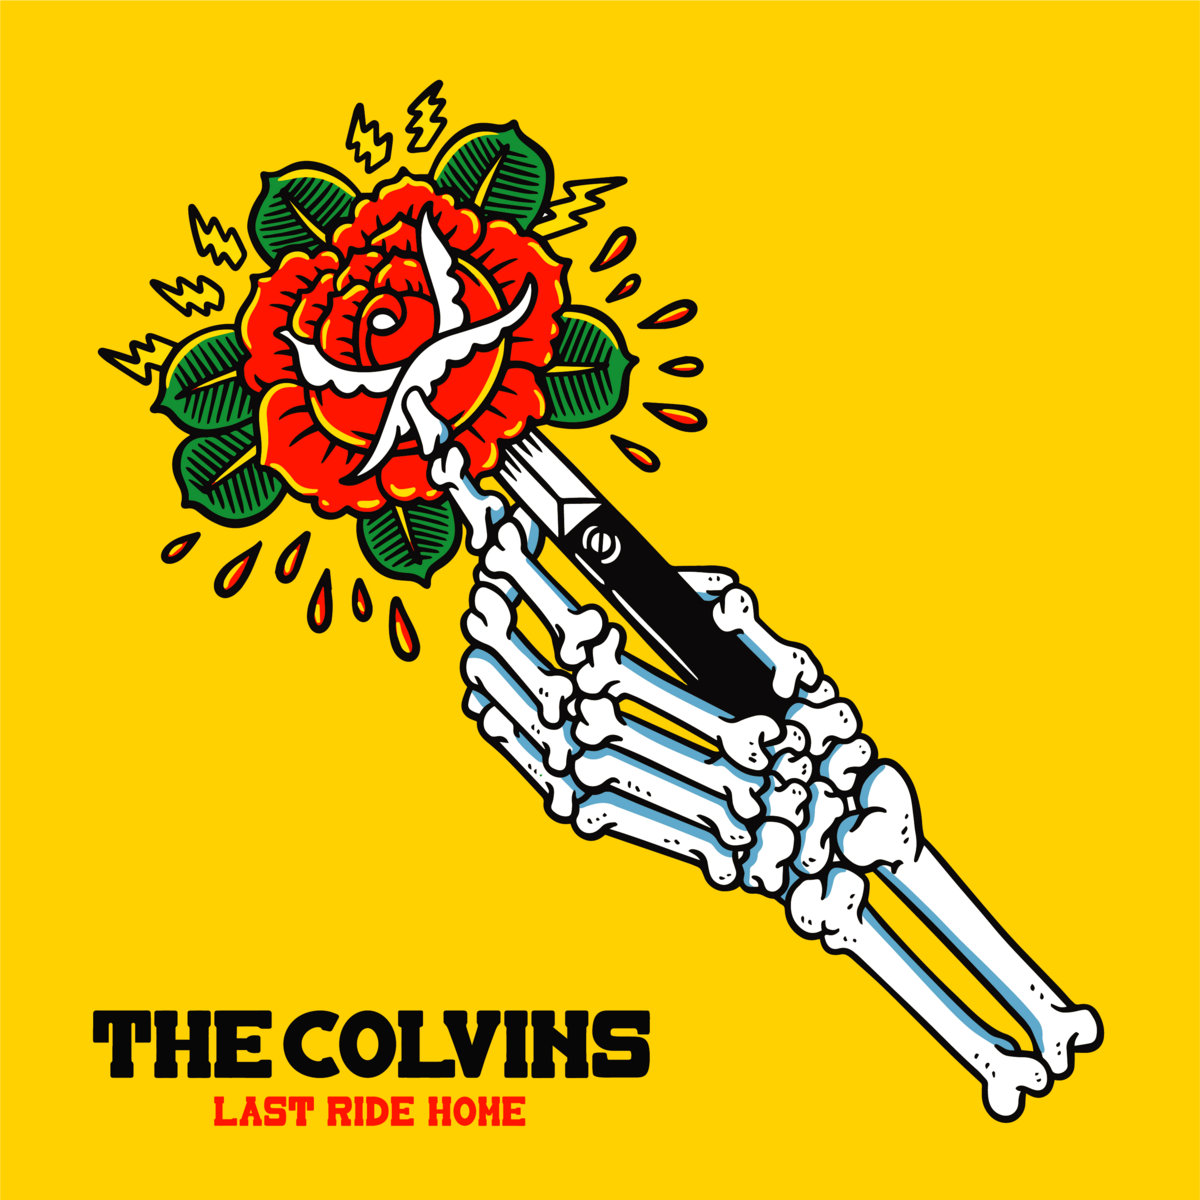 The Colvins - Last Ride Home - I buy Records - Bandcamp - player - 2020 - Sa Scena Sarda